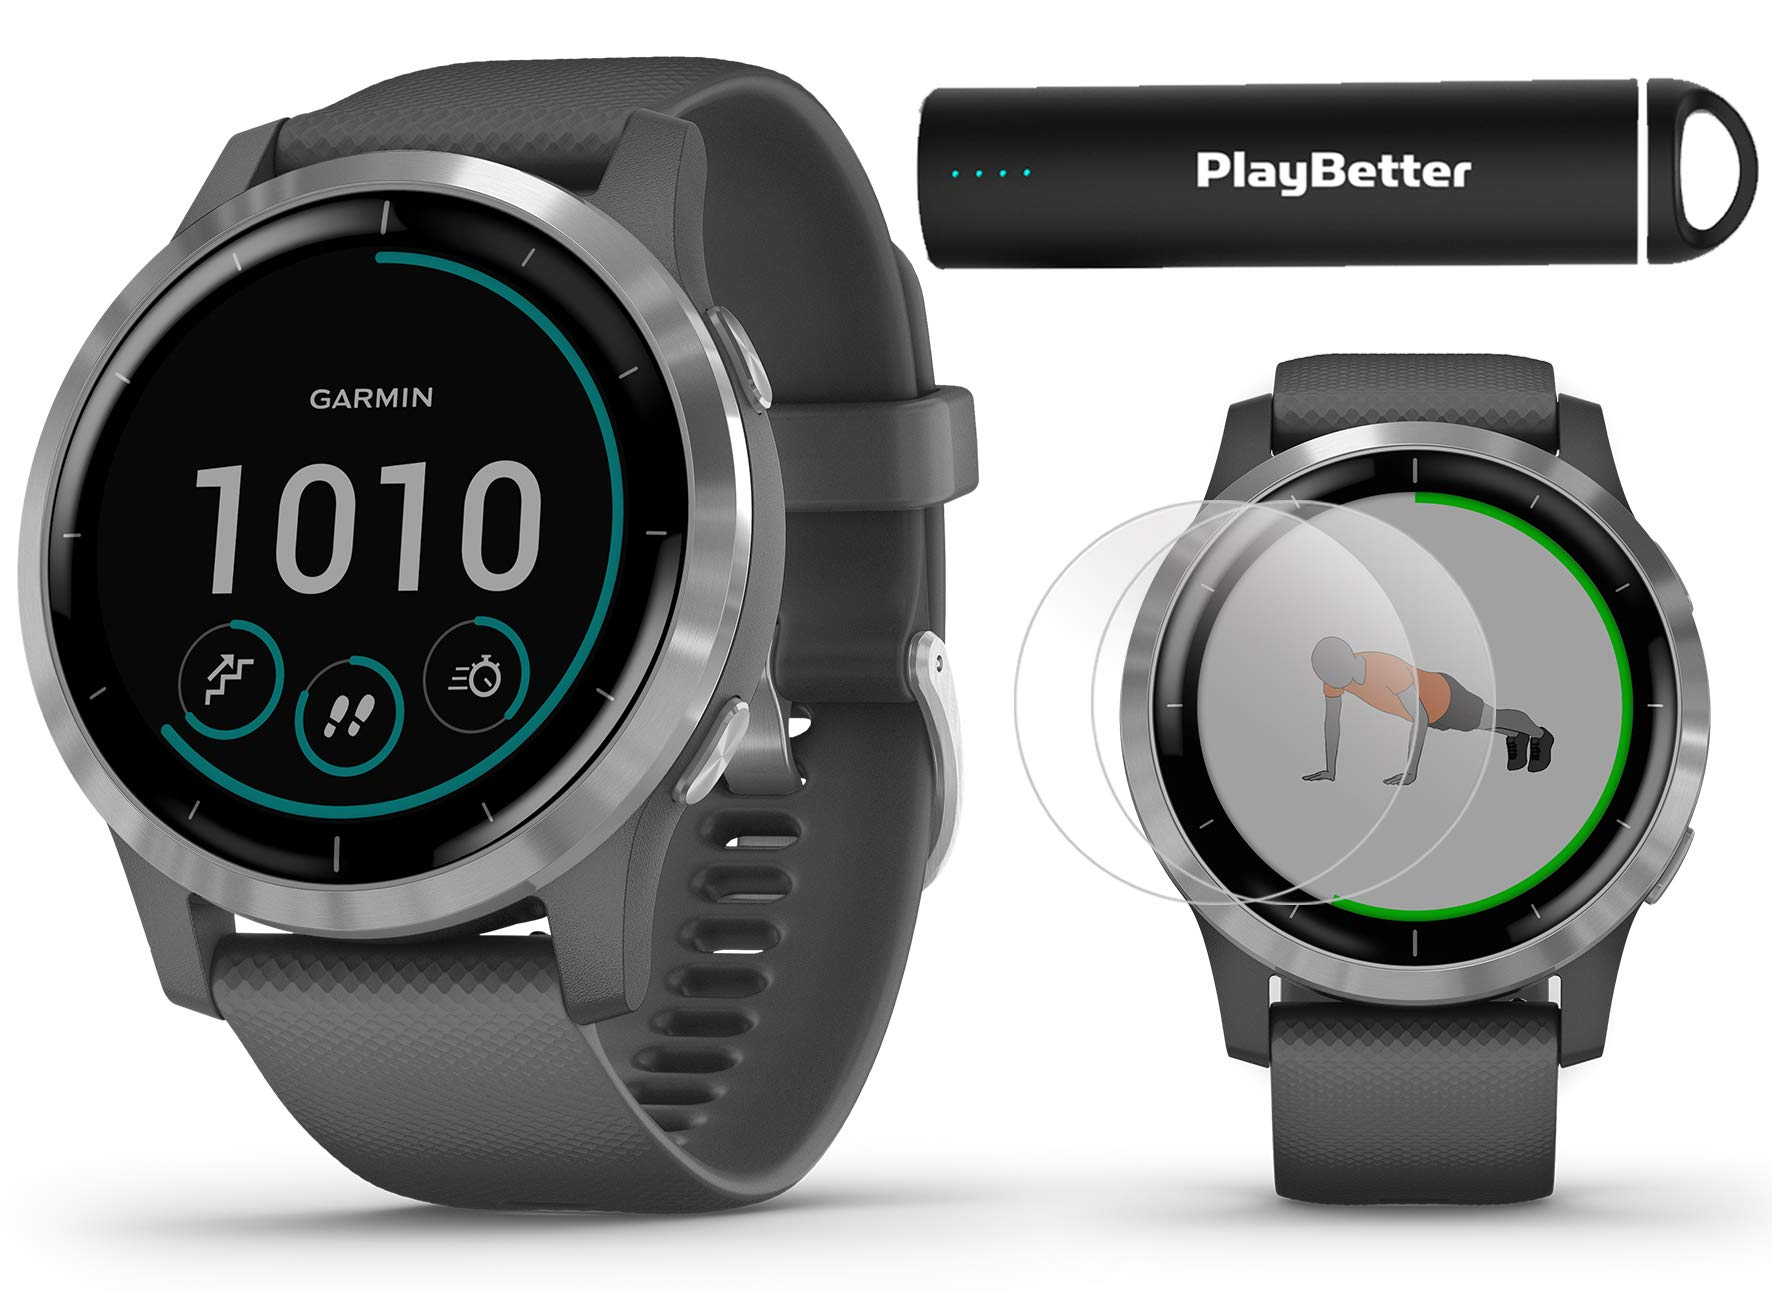 Garmin vivoactive 4 (Shadow Gray/Silver) Fitness Smartwatch Power Bundle | 2019 Model | with HD Screen Protectors (x4) & PlayBetter Portable Charger | Spotify, Music, Garmin Pay, Health Monitoring by PlayBetter